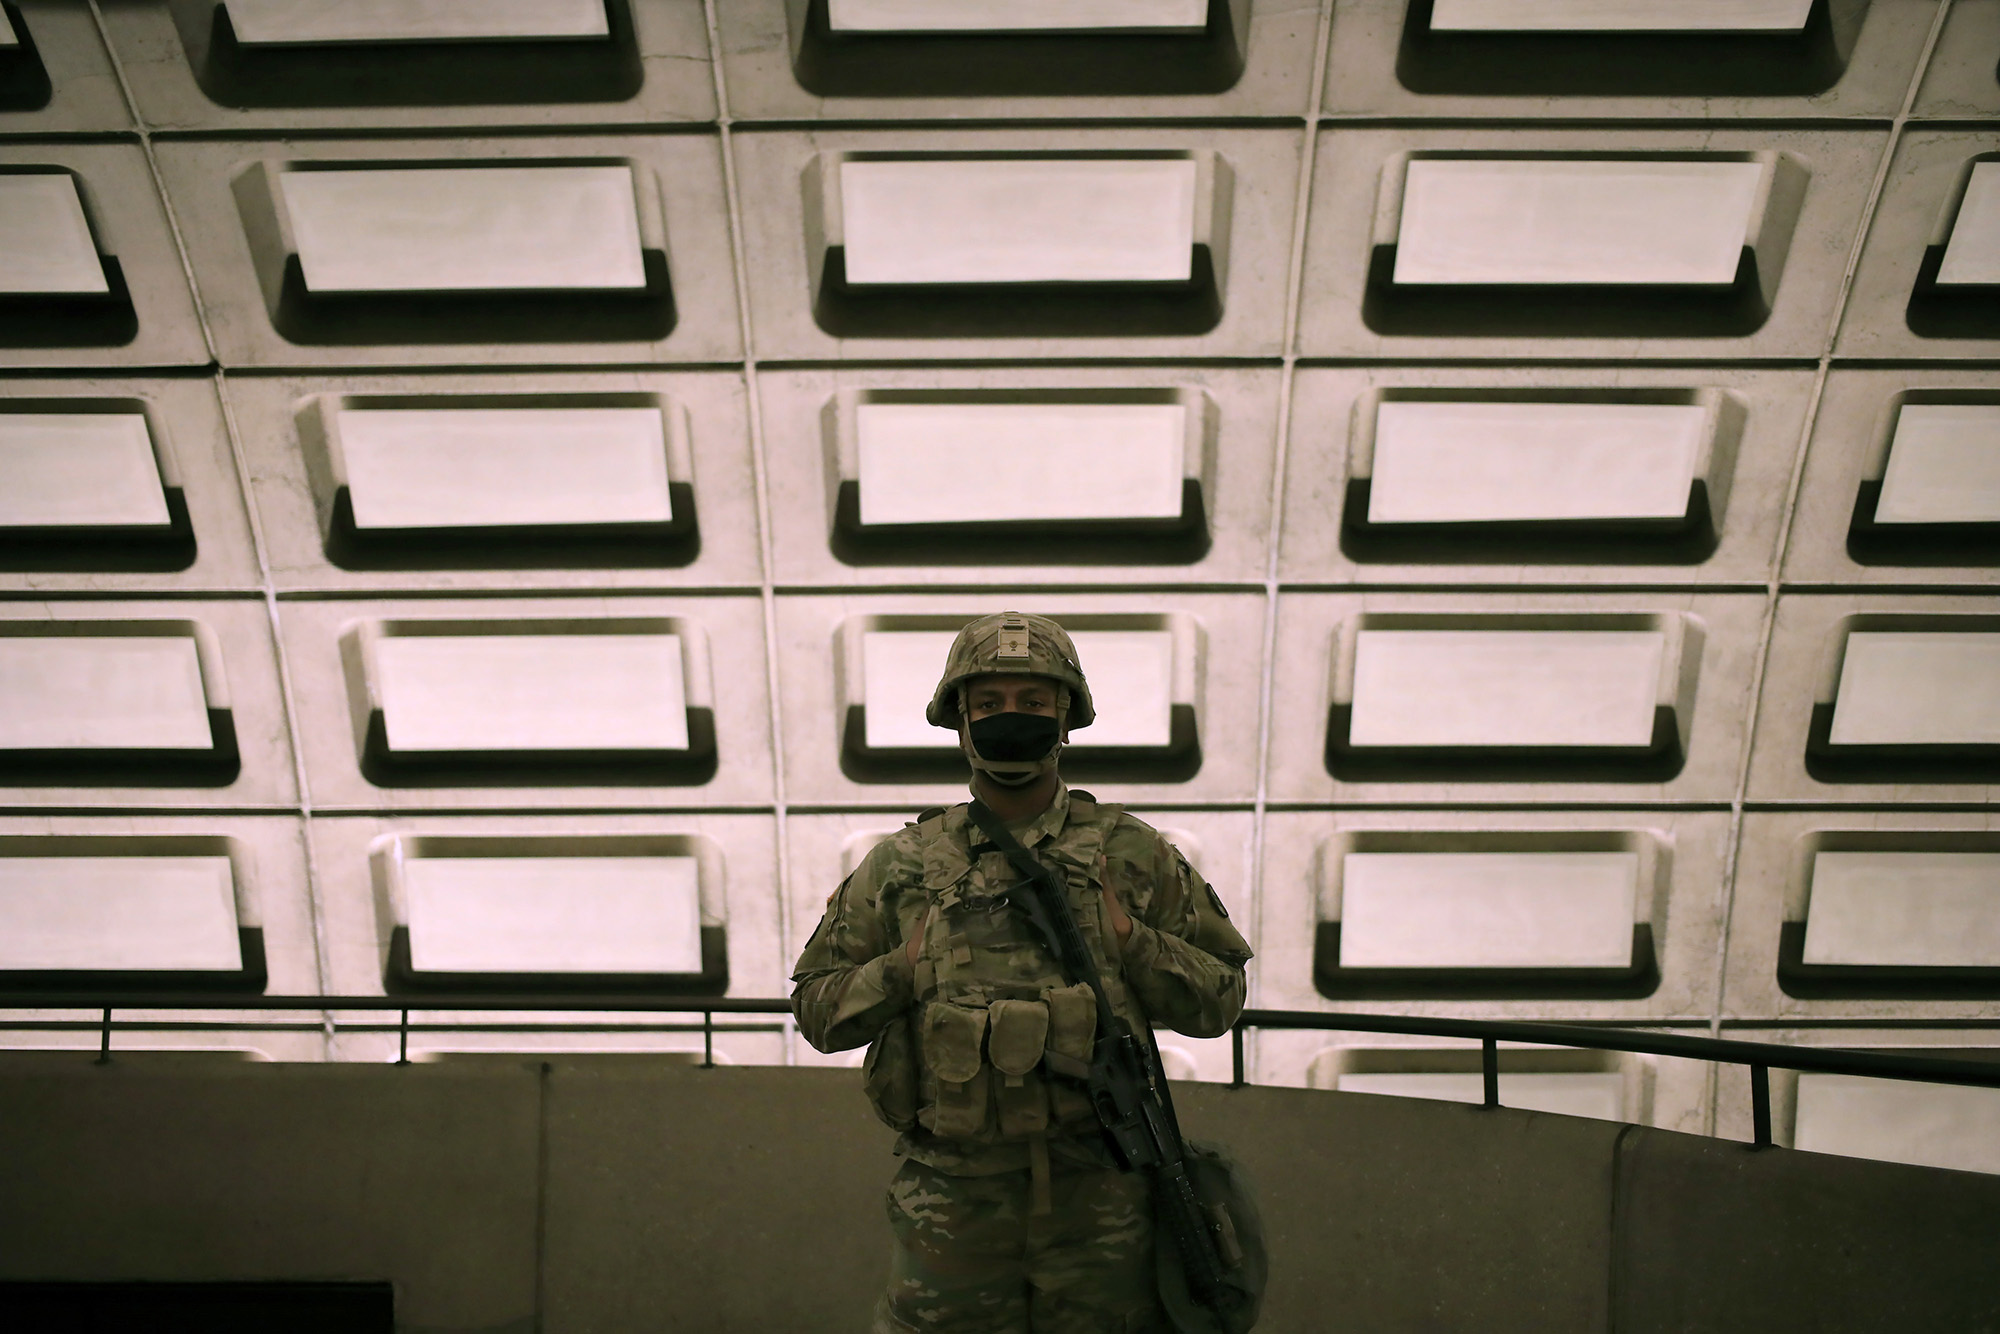 North Carolina Army National Guard soldiers patrol the Rosslyn Subway Station on the morning of the dedication ceremony on January 20, 2021 in Arlington, Virginia. (Luke Sharrett / Getty Images)